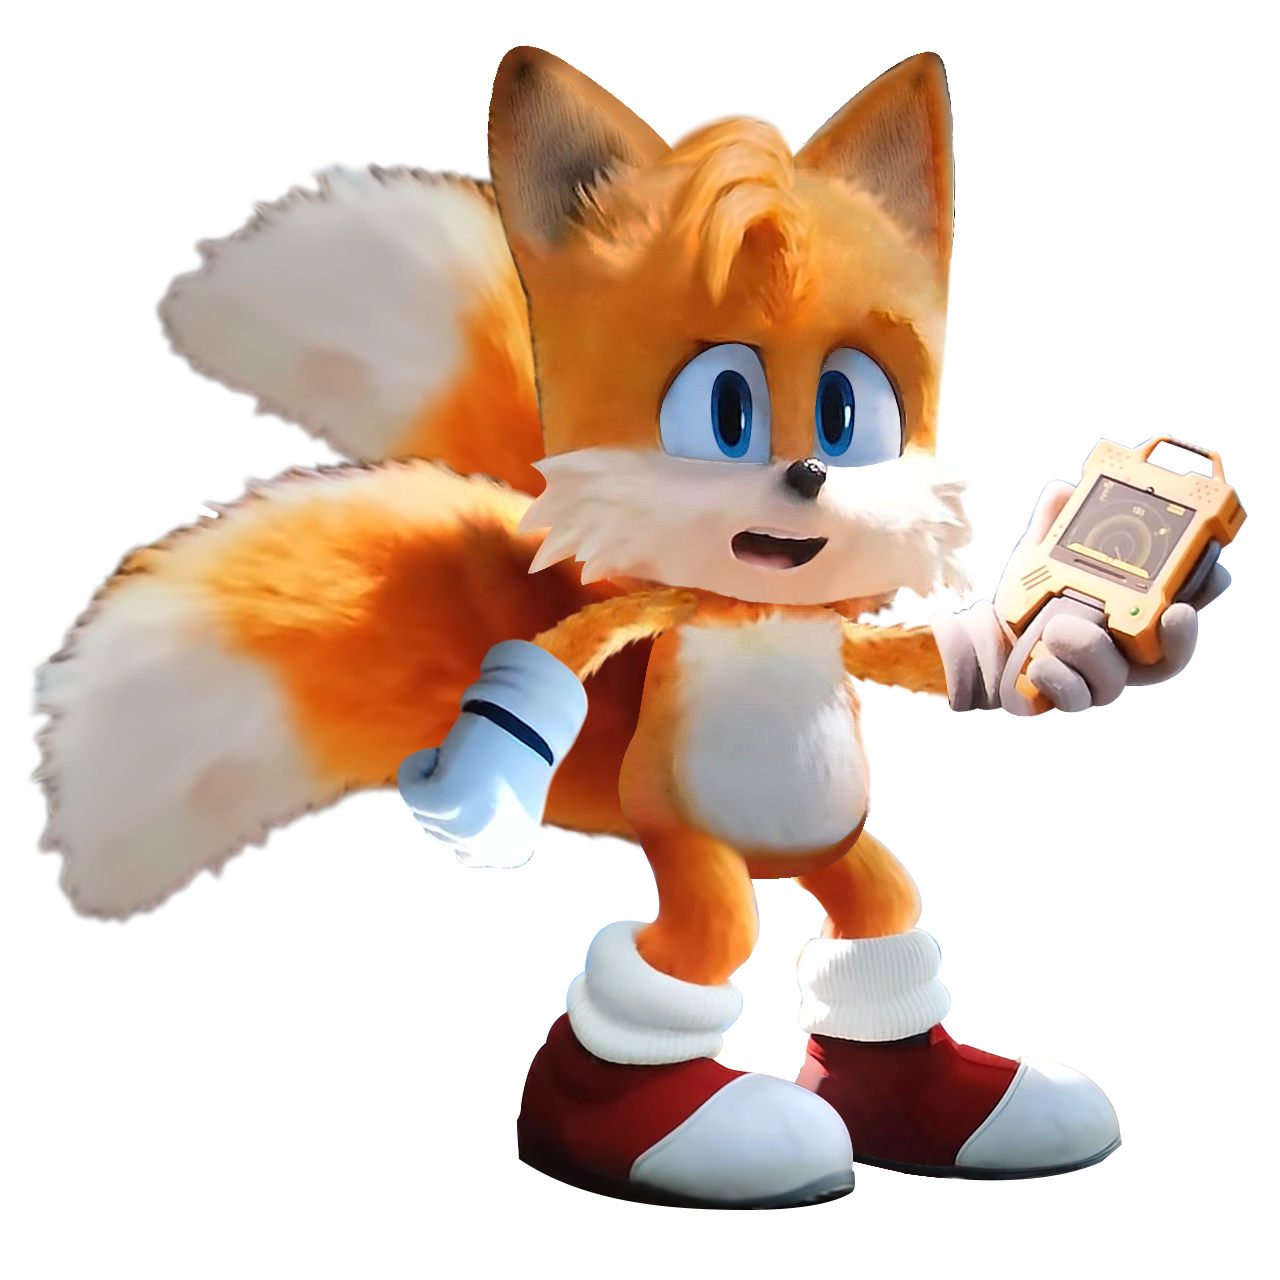 Sonic Movie Tails With Radar By Soniconbox On Deviantart In 2020 Sonic Hedgehog Movie Sonic Heroes